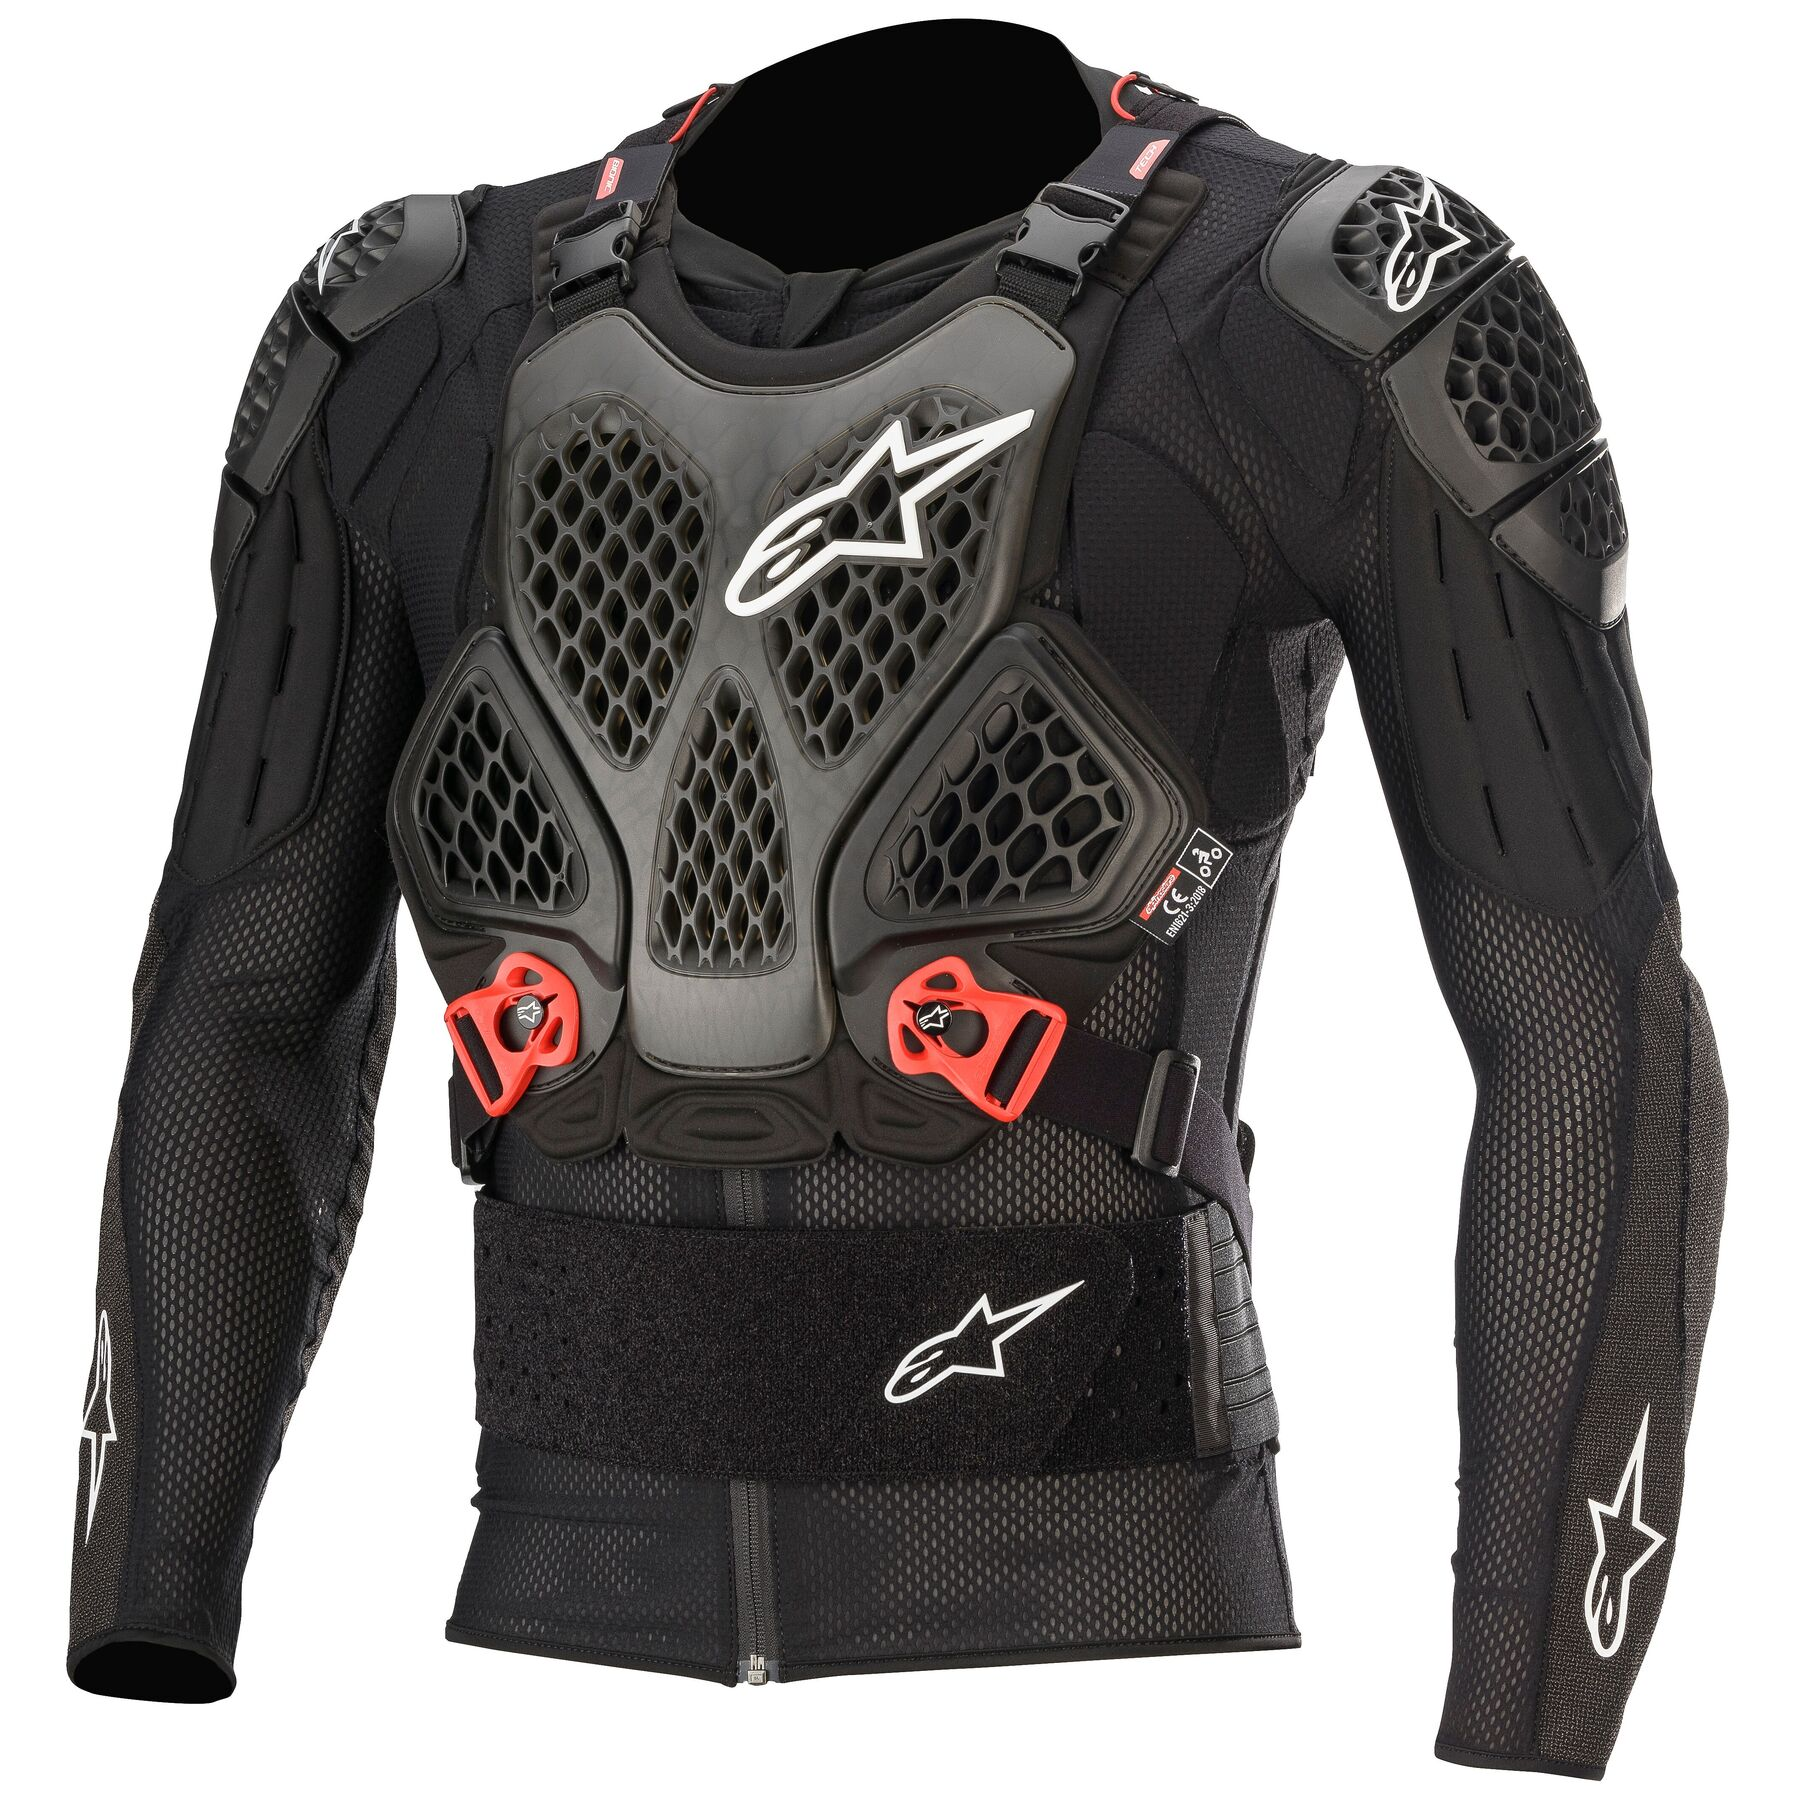 Black//Red//White Small Alpinestars MX Sequence Long Sleeve Protection Jacket